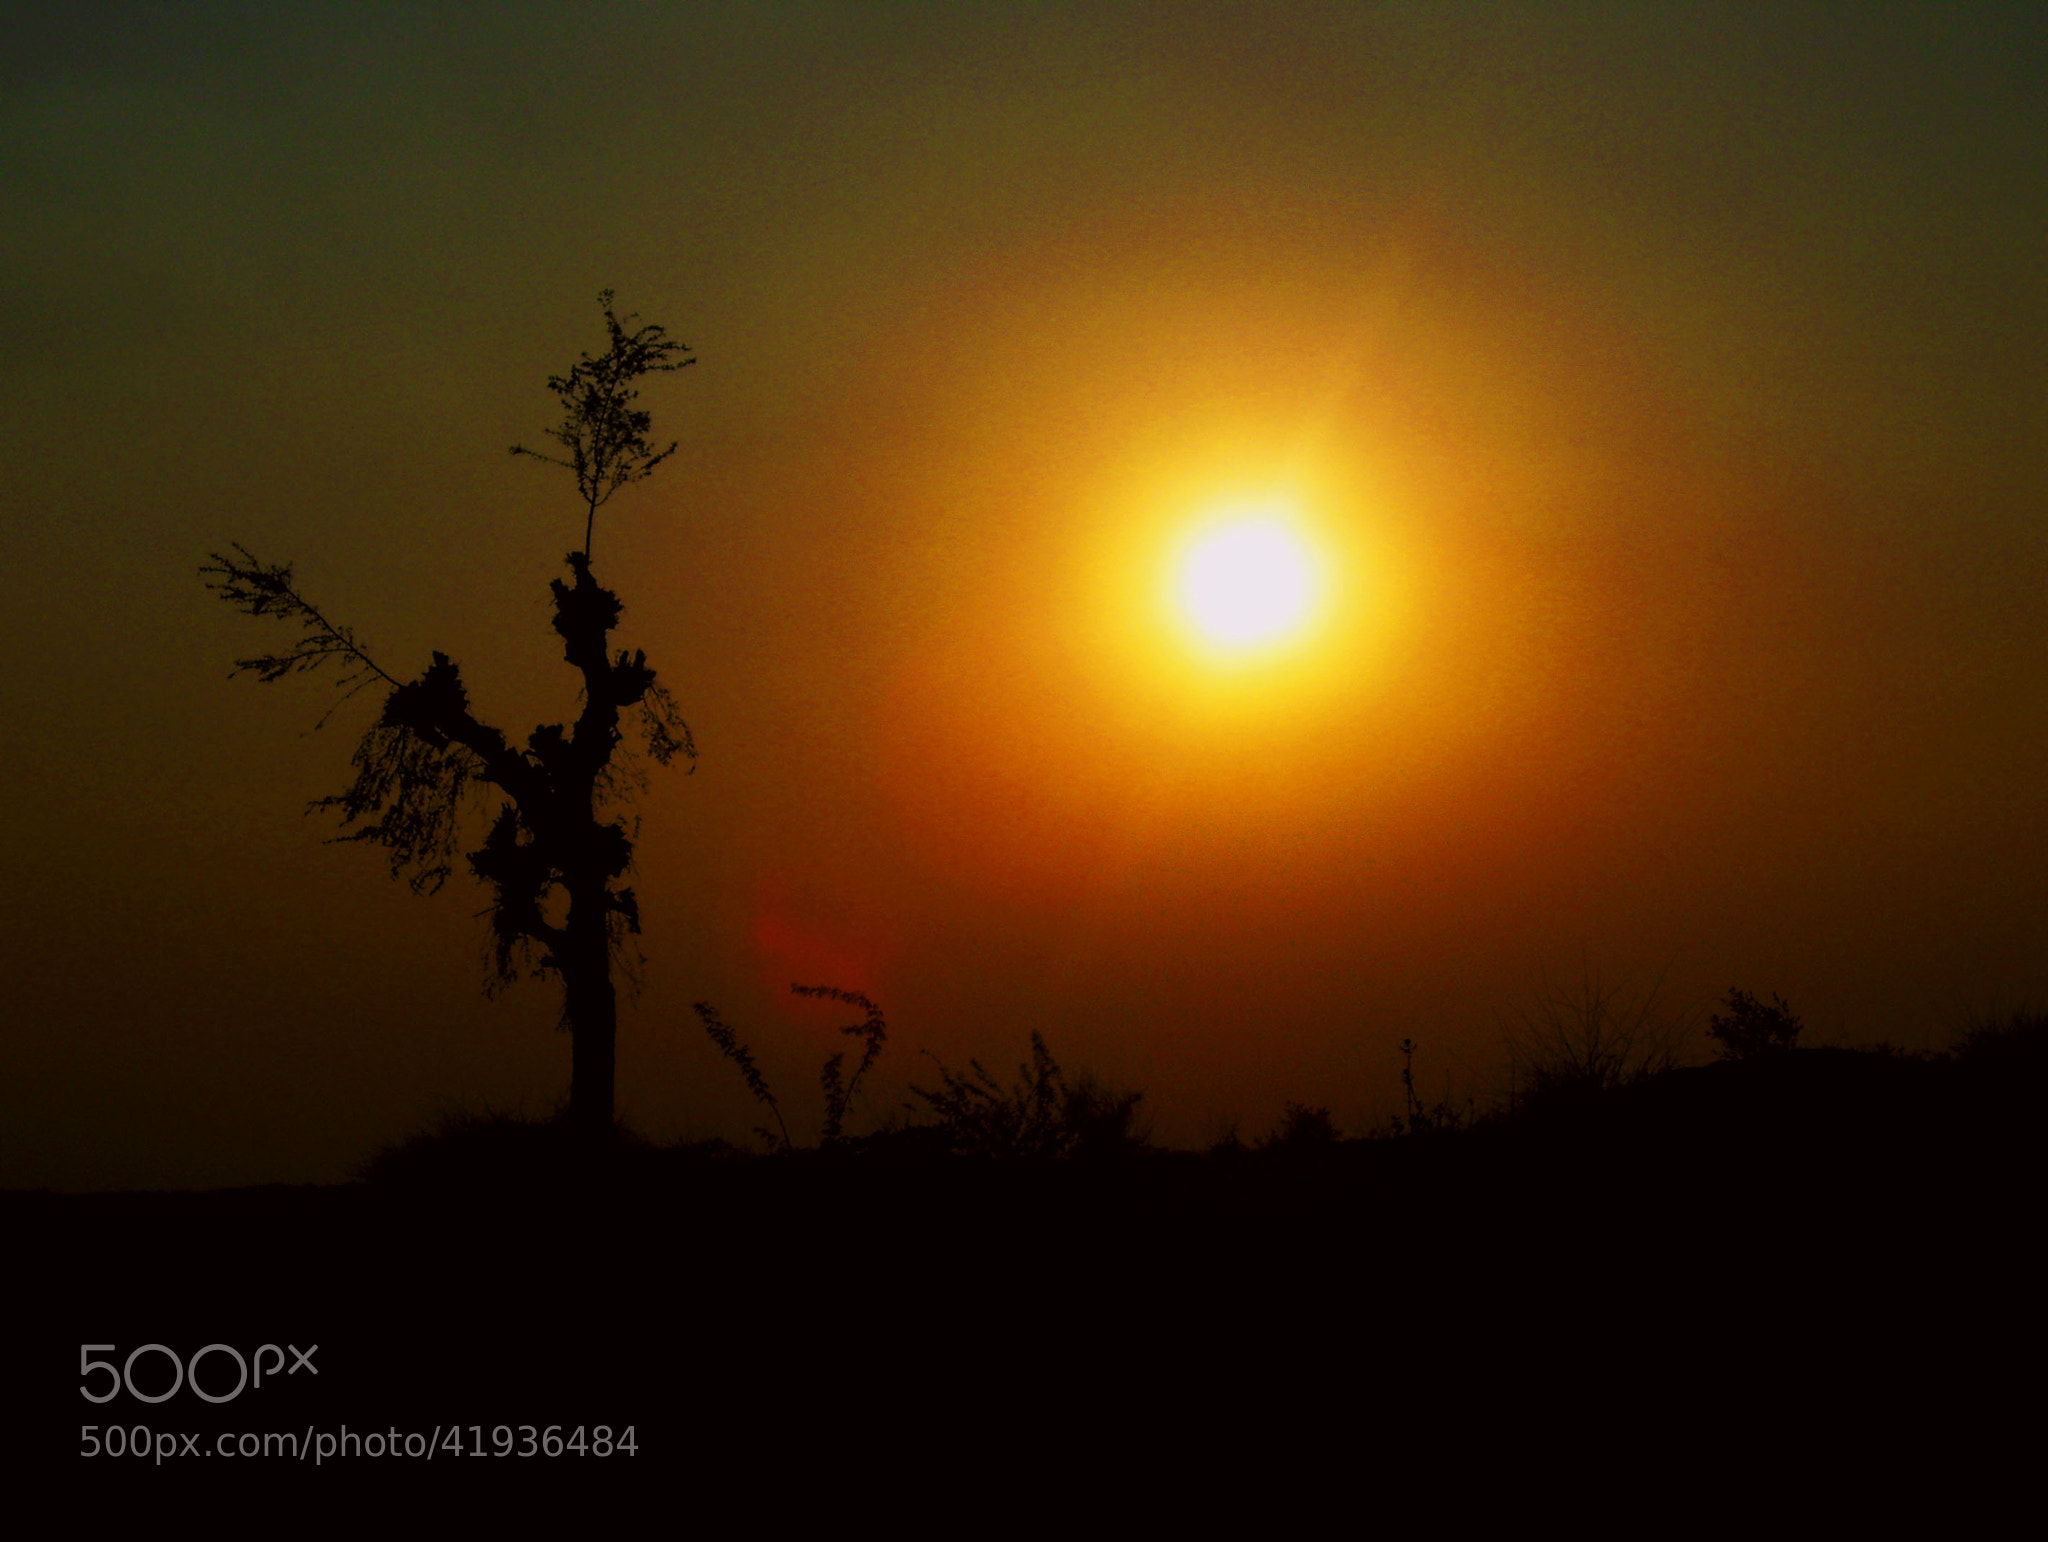 Photograph Untitled by Hitesh Singhal on 500px